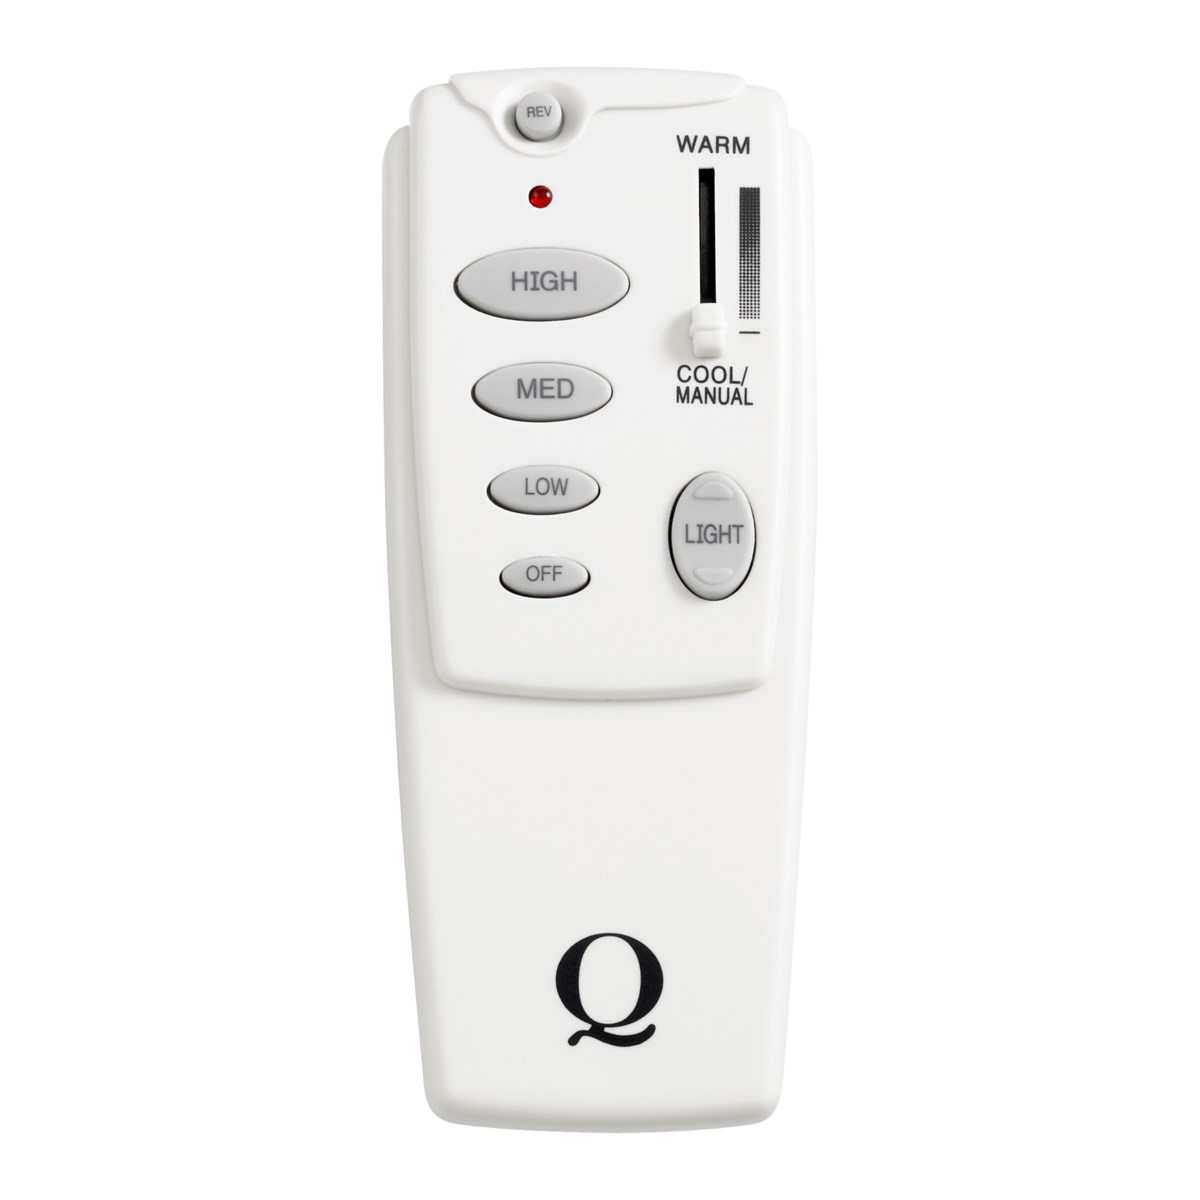 HAND HELD REMOTE 7-1401-0